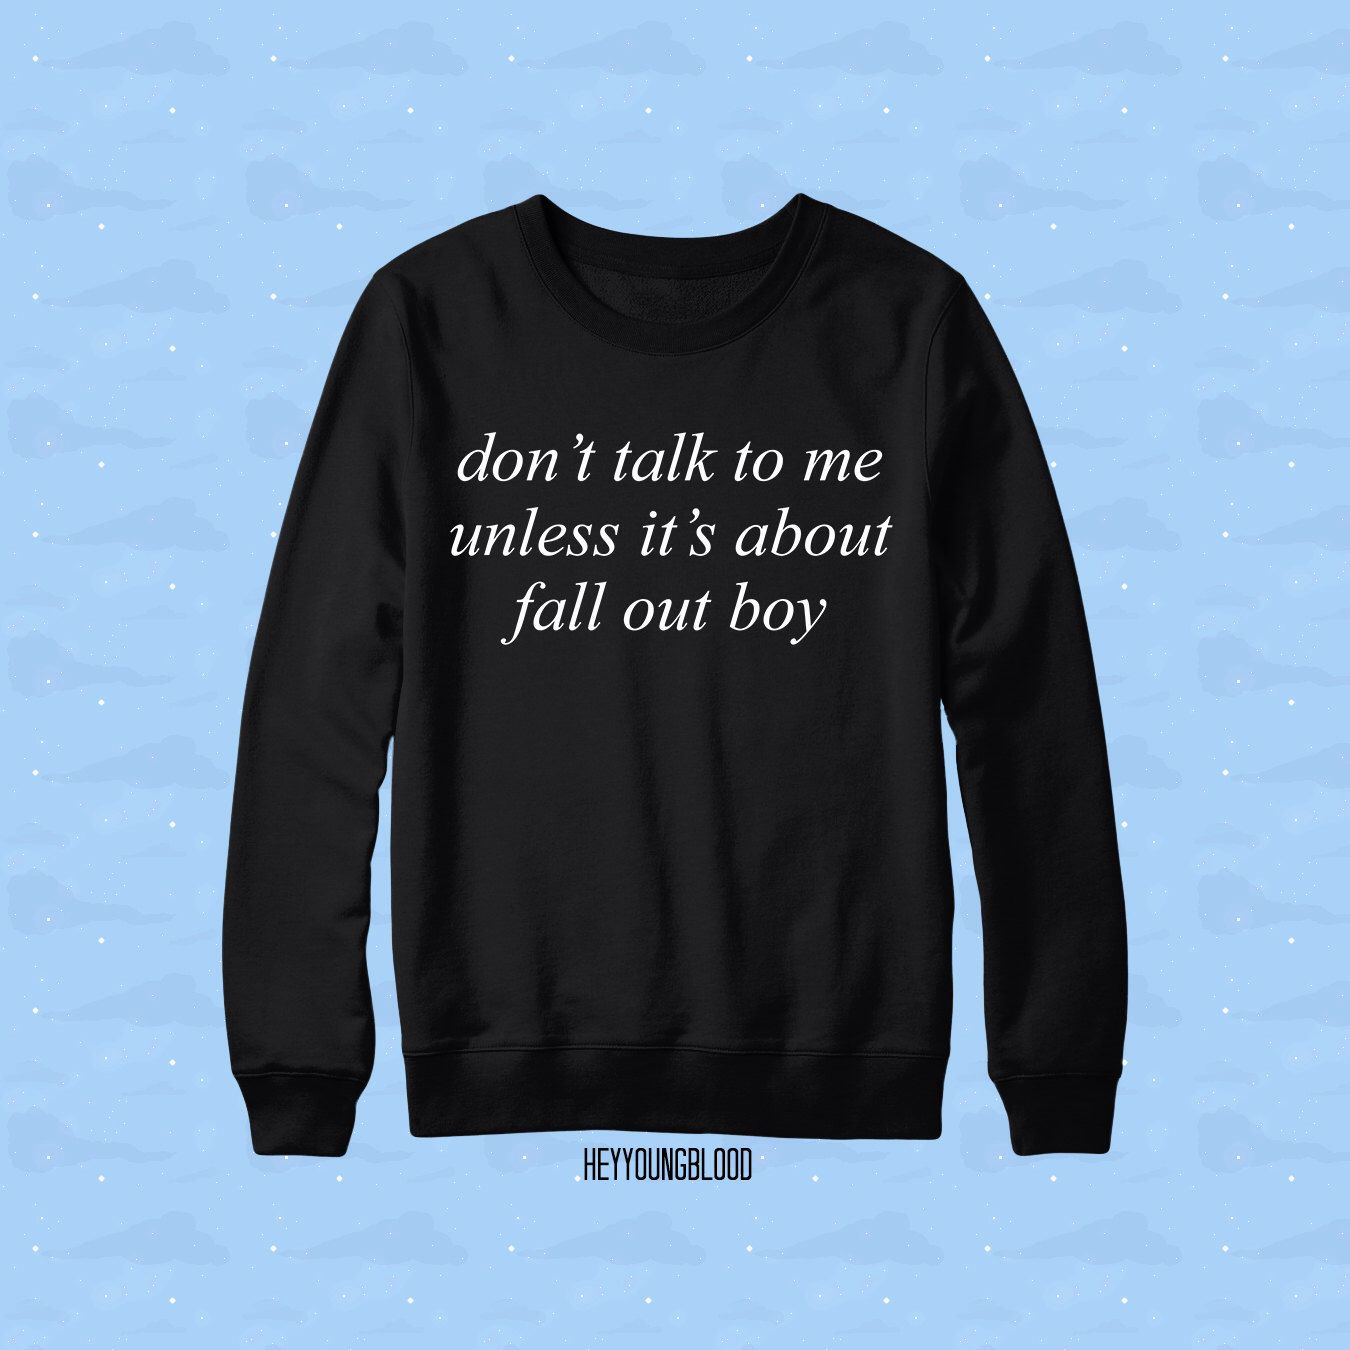 Don't Talk To Me Unless It's About Fall Out Boy Sweater by HeyYoungBlood on Etsy https://www.etsy.com/listing/207462746/dont-talk-to-me-unless-its-about-fall